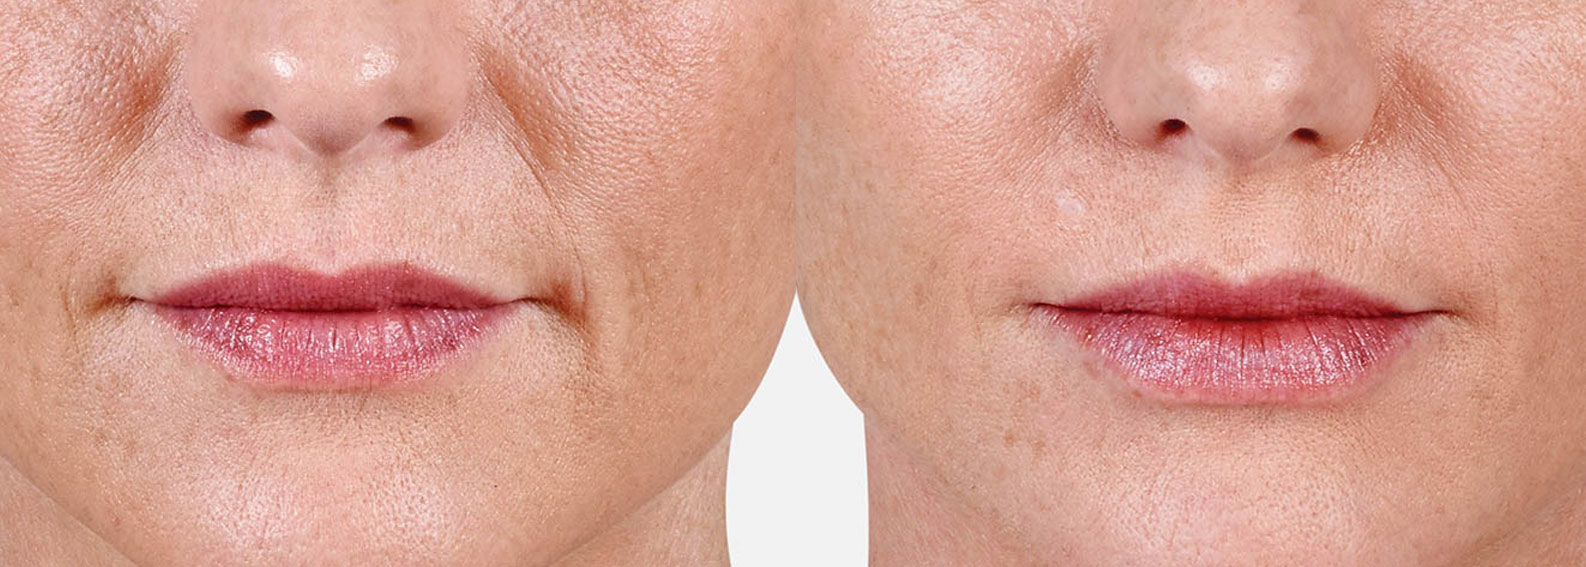 Before and after photo of woman with Juvederm lip injections showing fuller, plump lips.